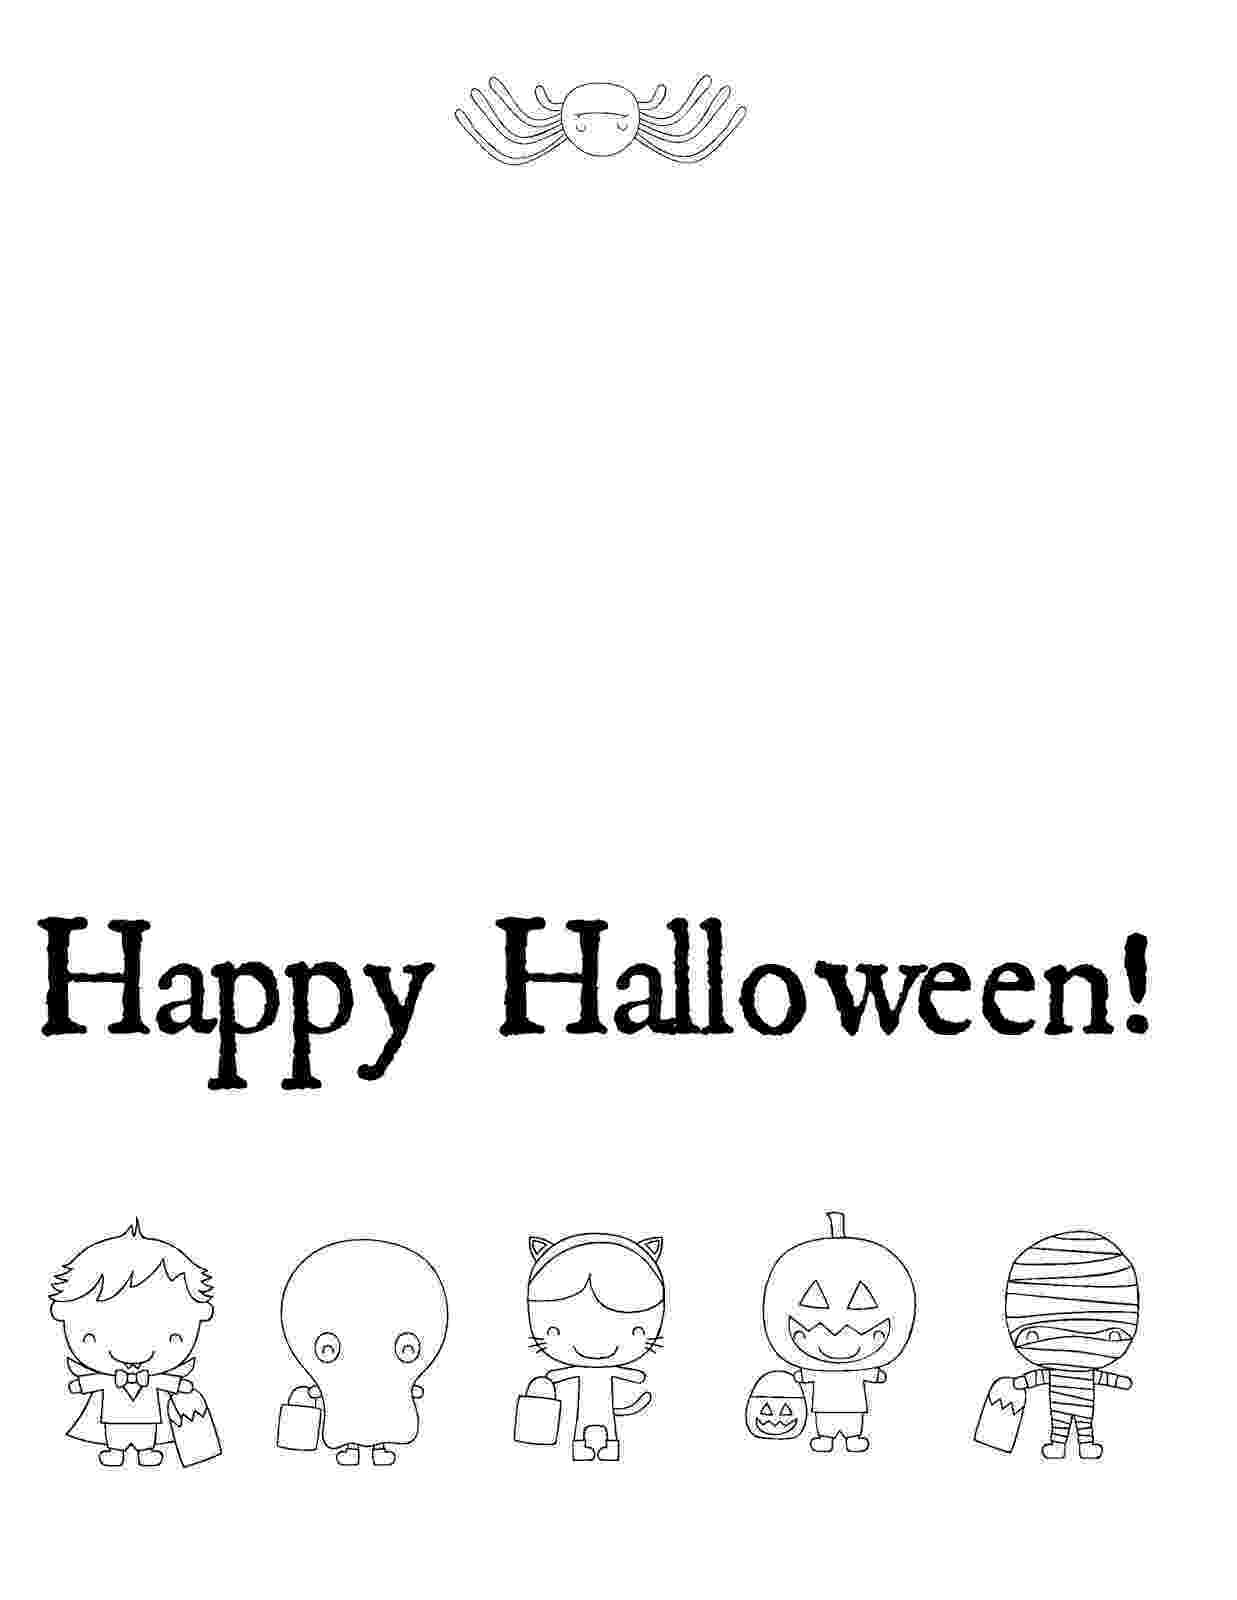 printable colouring halloween cards musings of an average mom free halloween cards to color printable halloween cards colouring